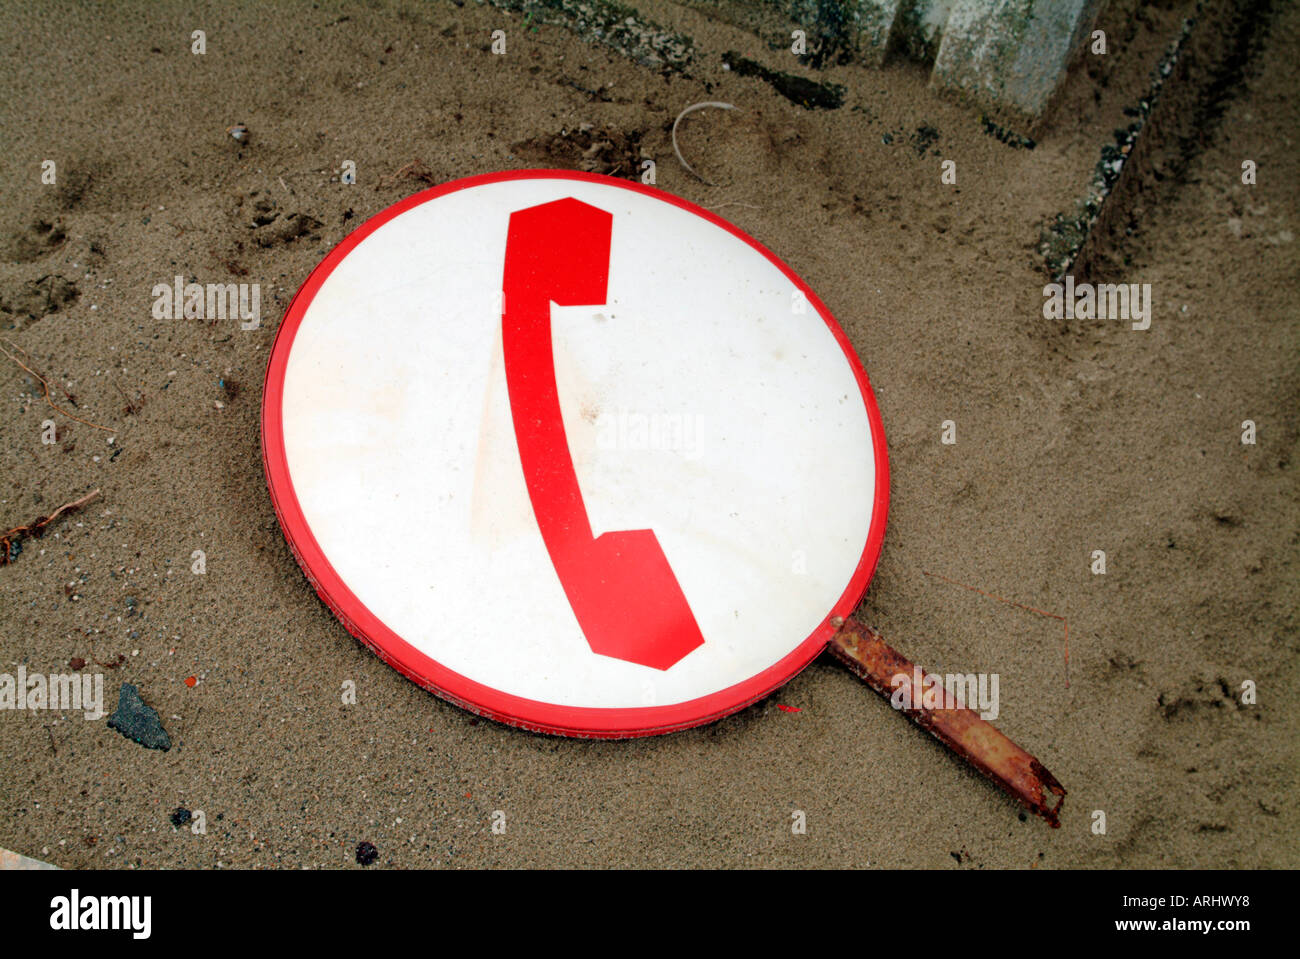 Symbol For Telephone Old Telephone Shield Sign Lying On The Ground